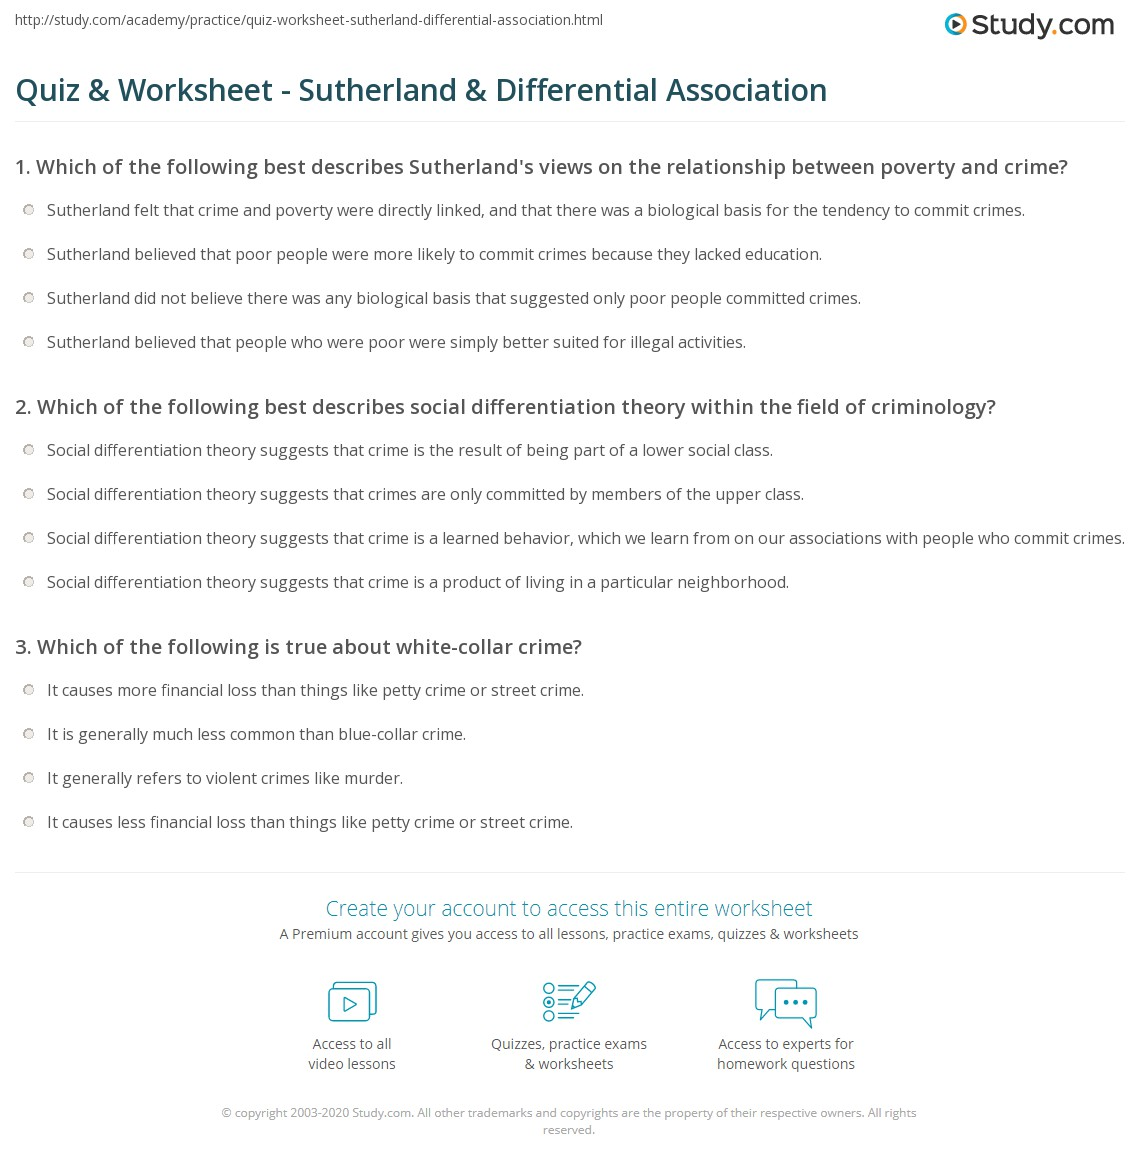 sutherland differential association